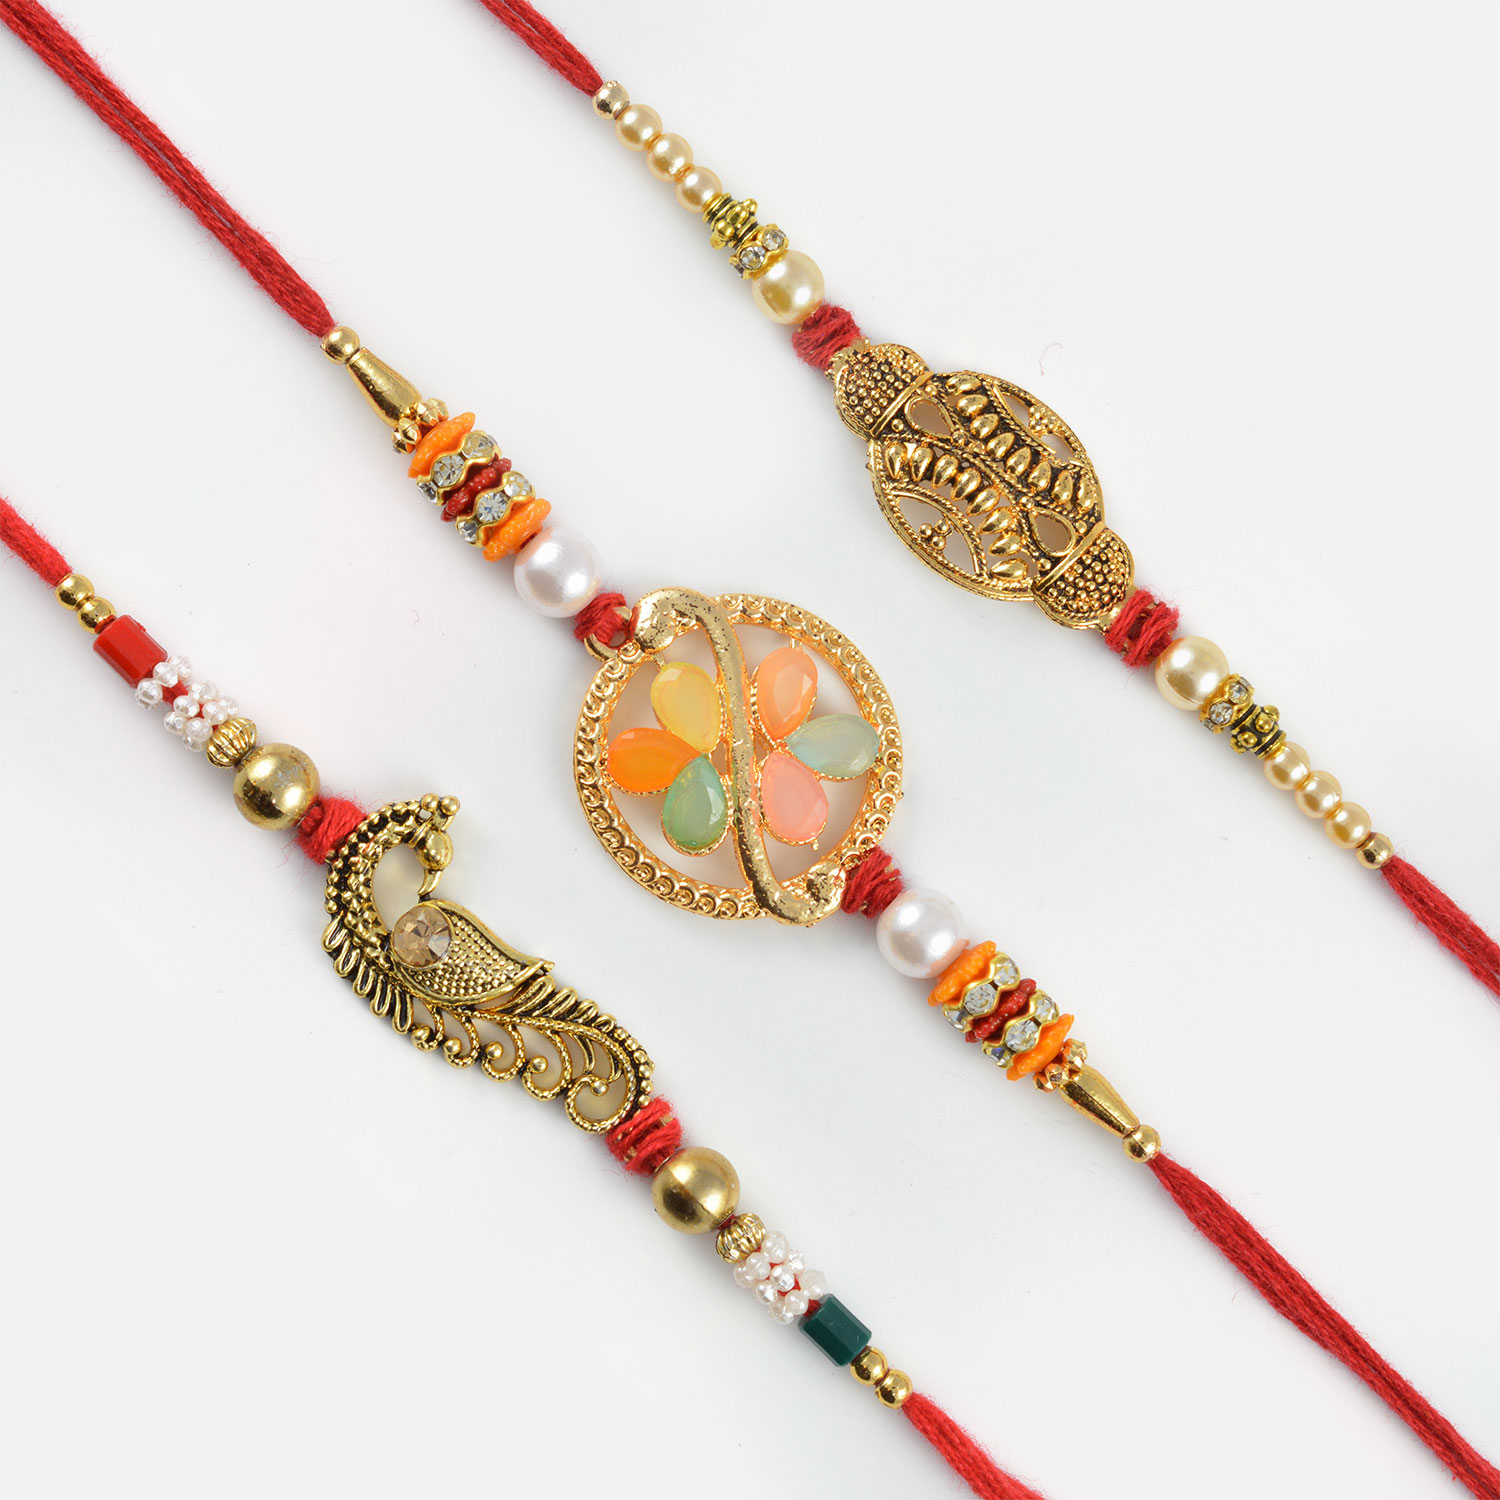 Astonishing Golden Mayur and Colourful Beads Rakhi Set of 3